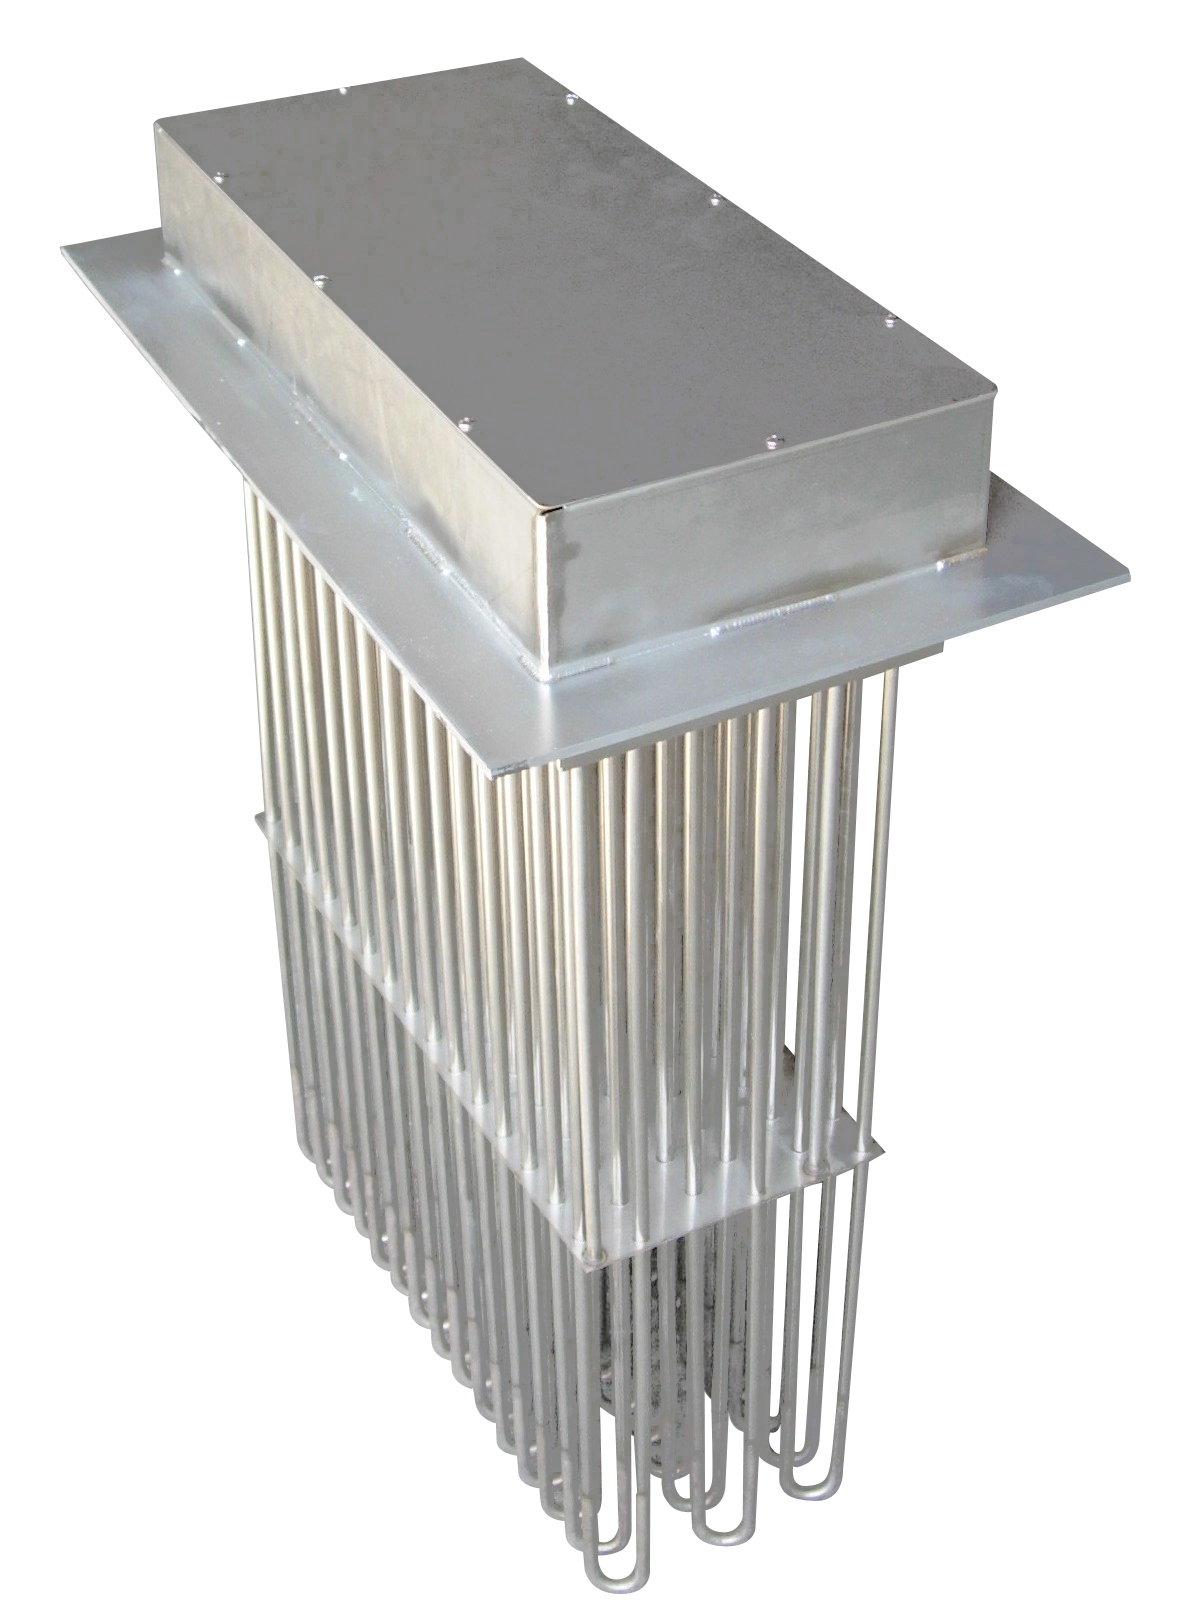 #6F685C Duct Heater Related Keywords & Suggestions Duct Heater  Best 7133 Warm Air Heating Ducts photos with 1178x1611 px on helpvideos.info - Air Conditioners, Air Coolers and more